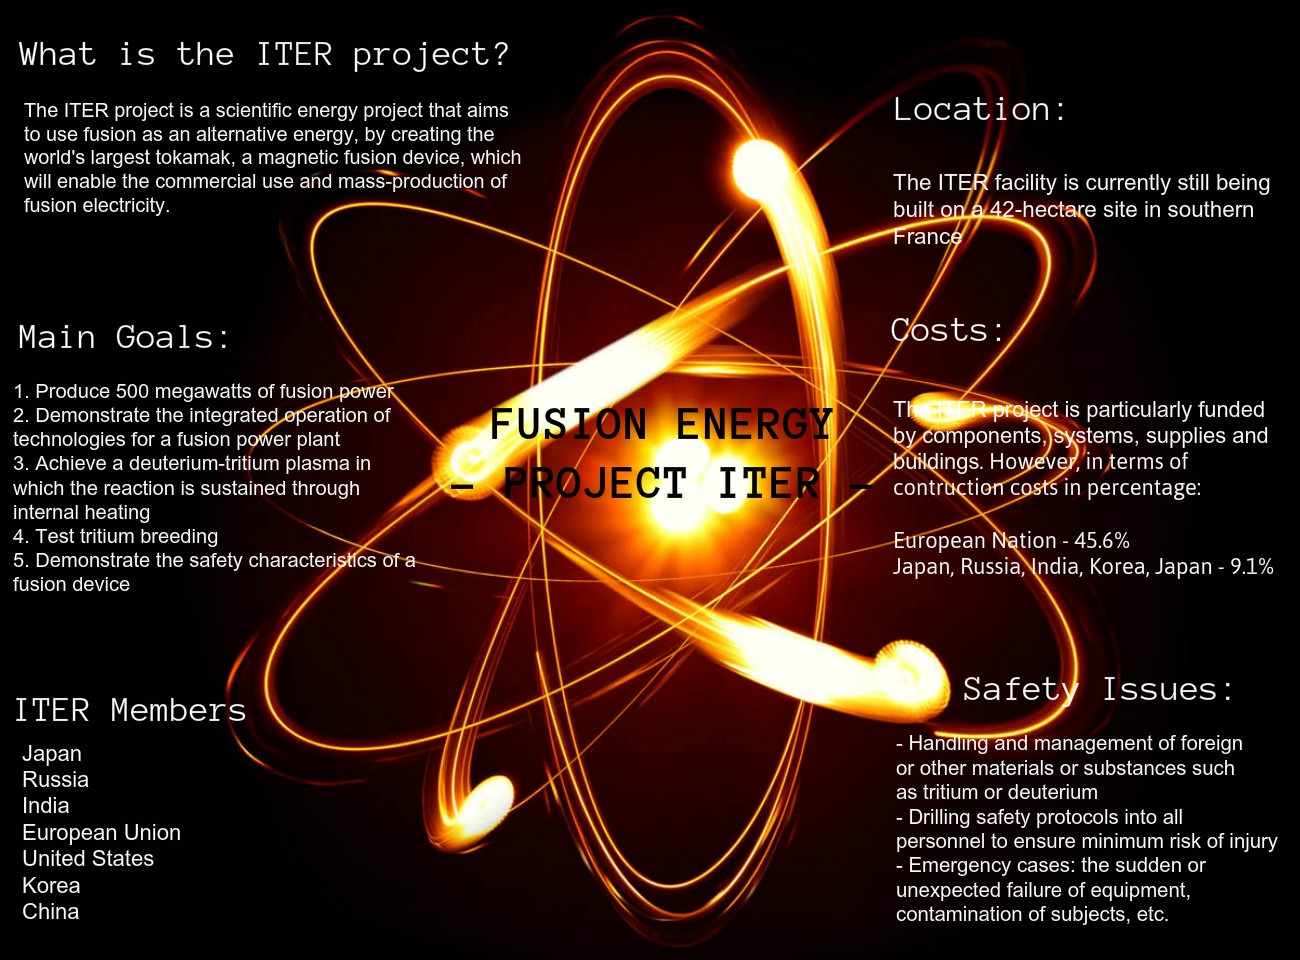 Energy: Project ITER